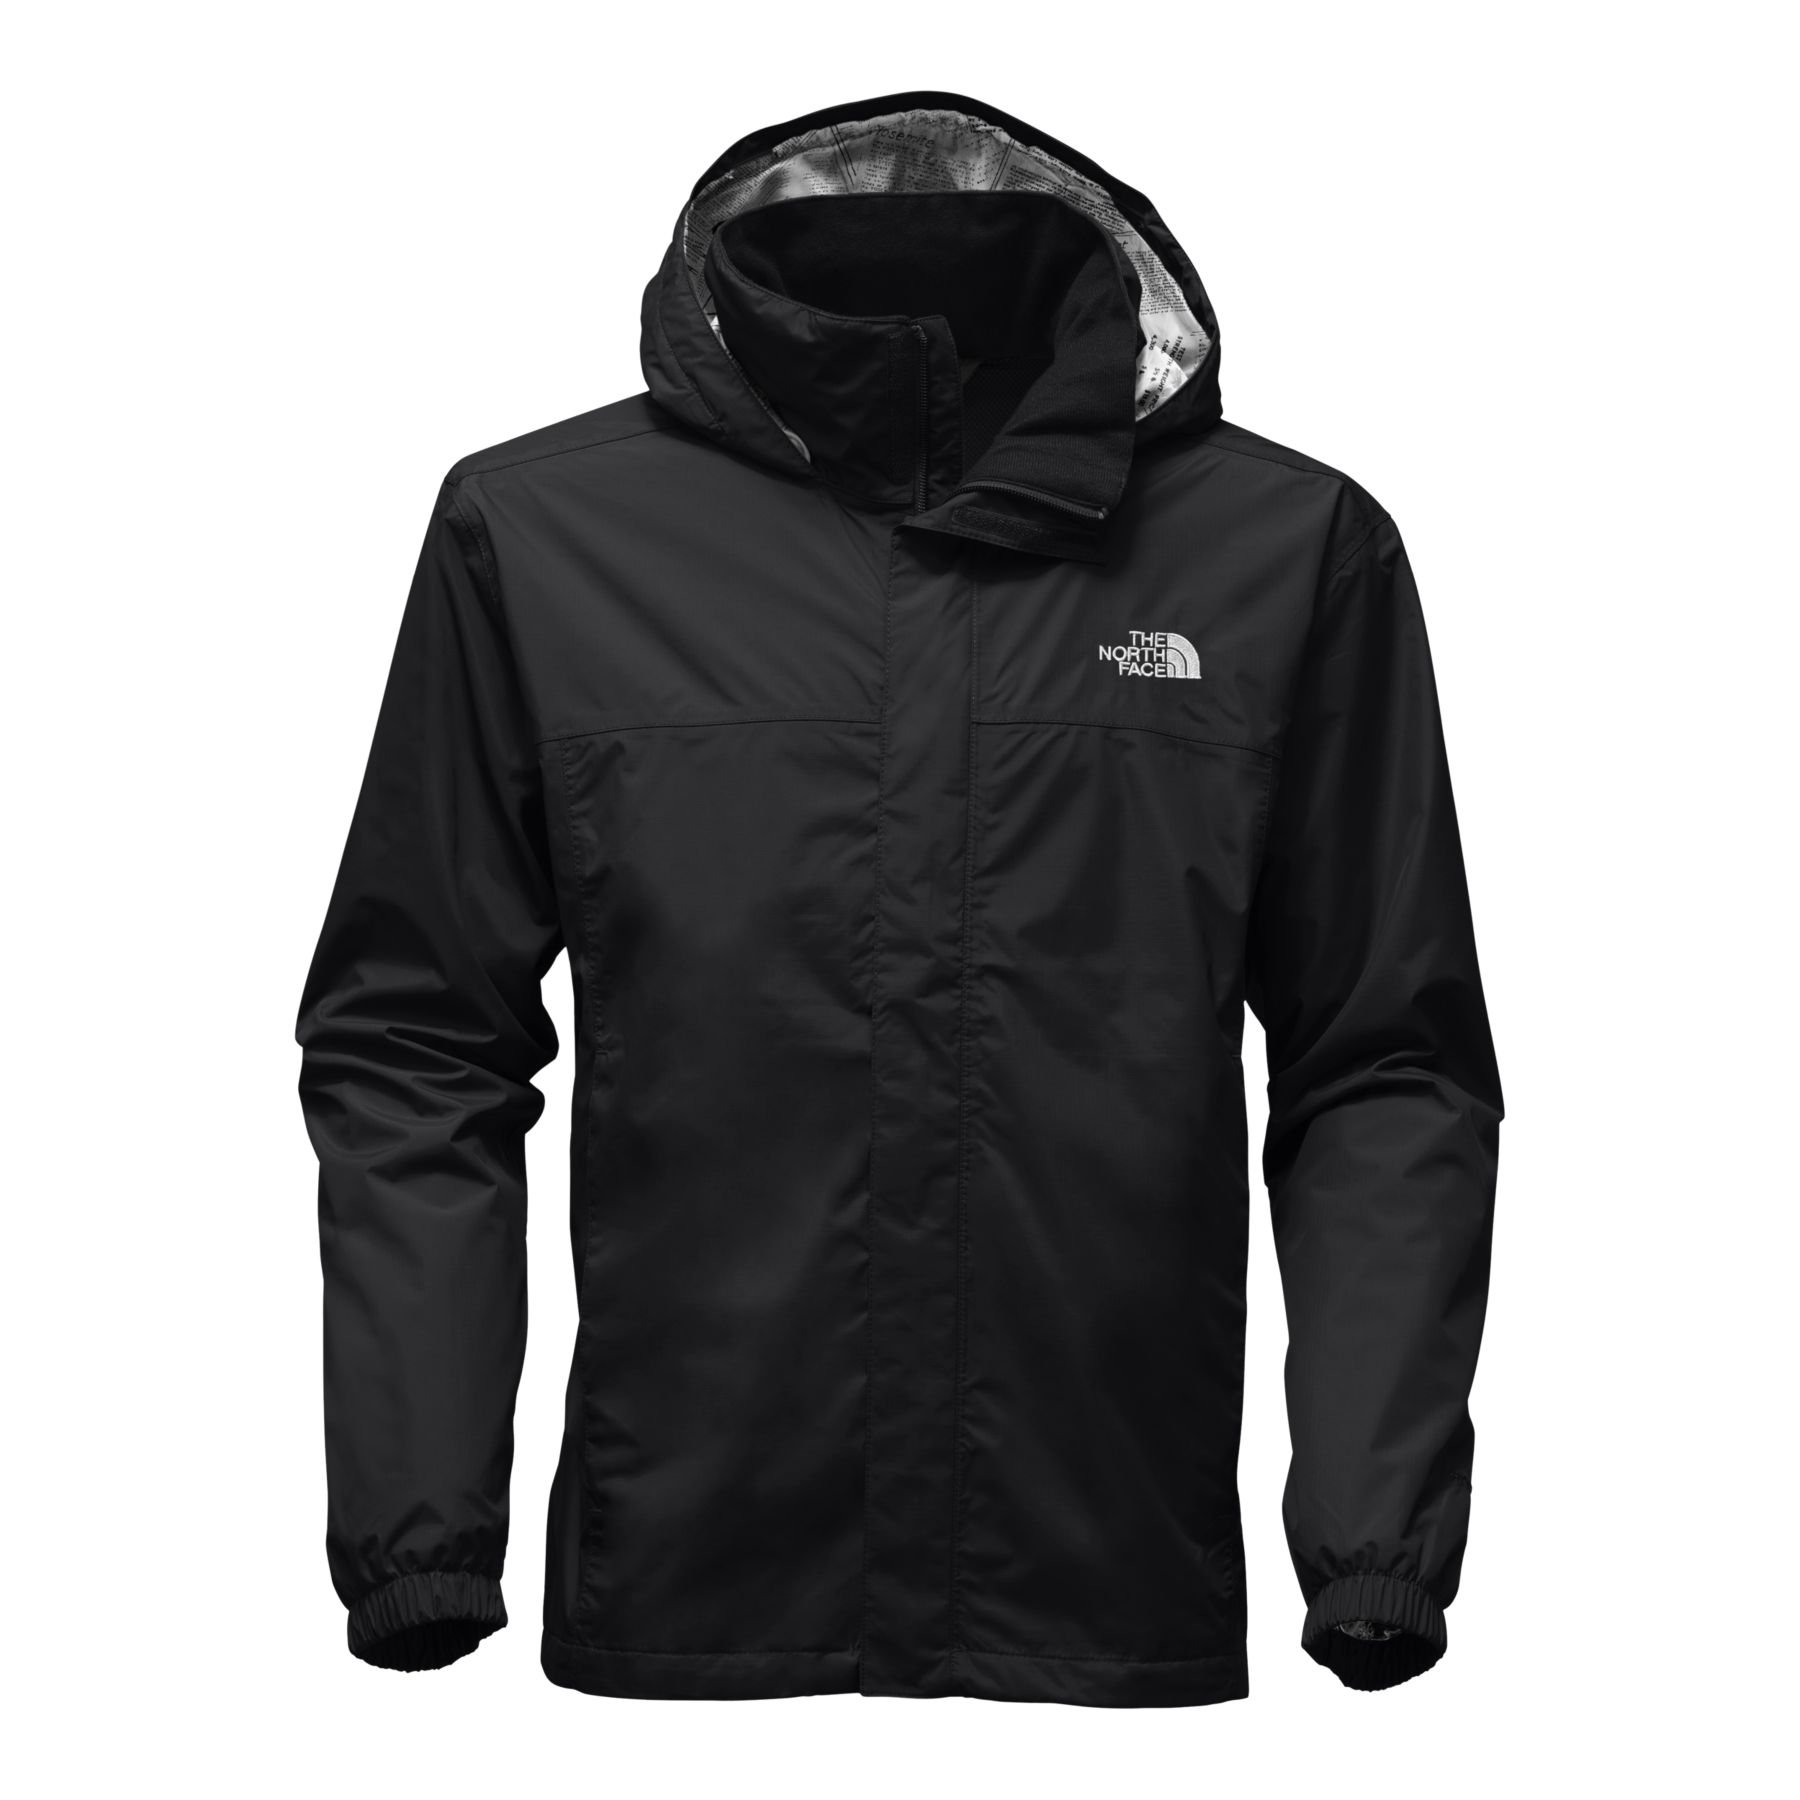 The North Face Mens Resolve 2 Jacket - TNF Black/TNF White Light Gray Collar Print - L